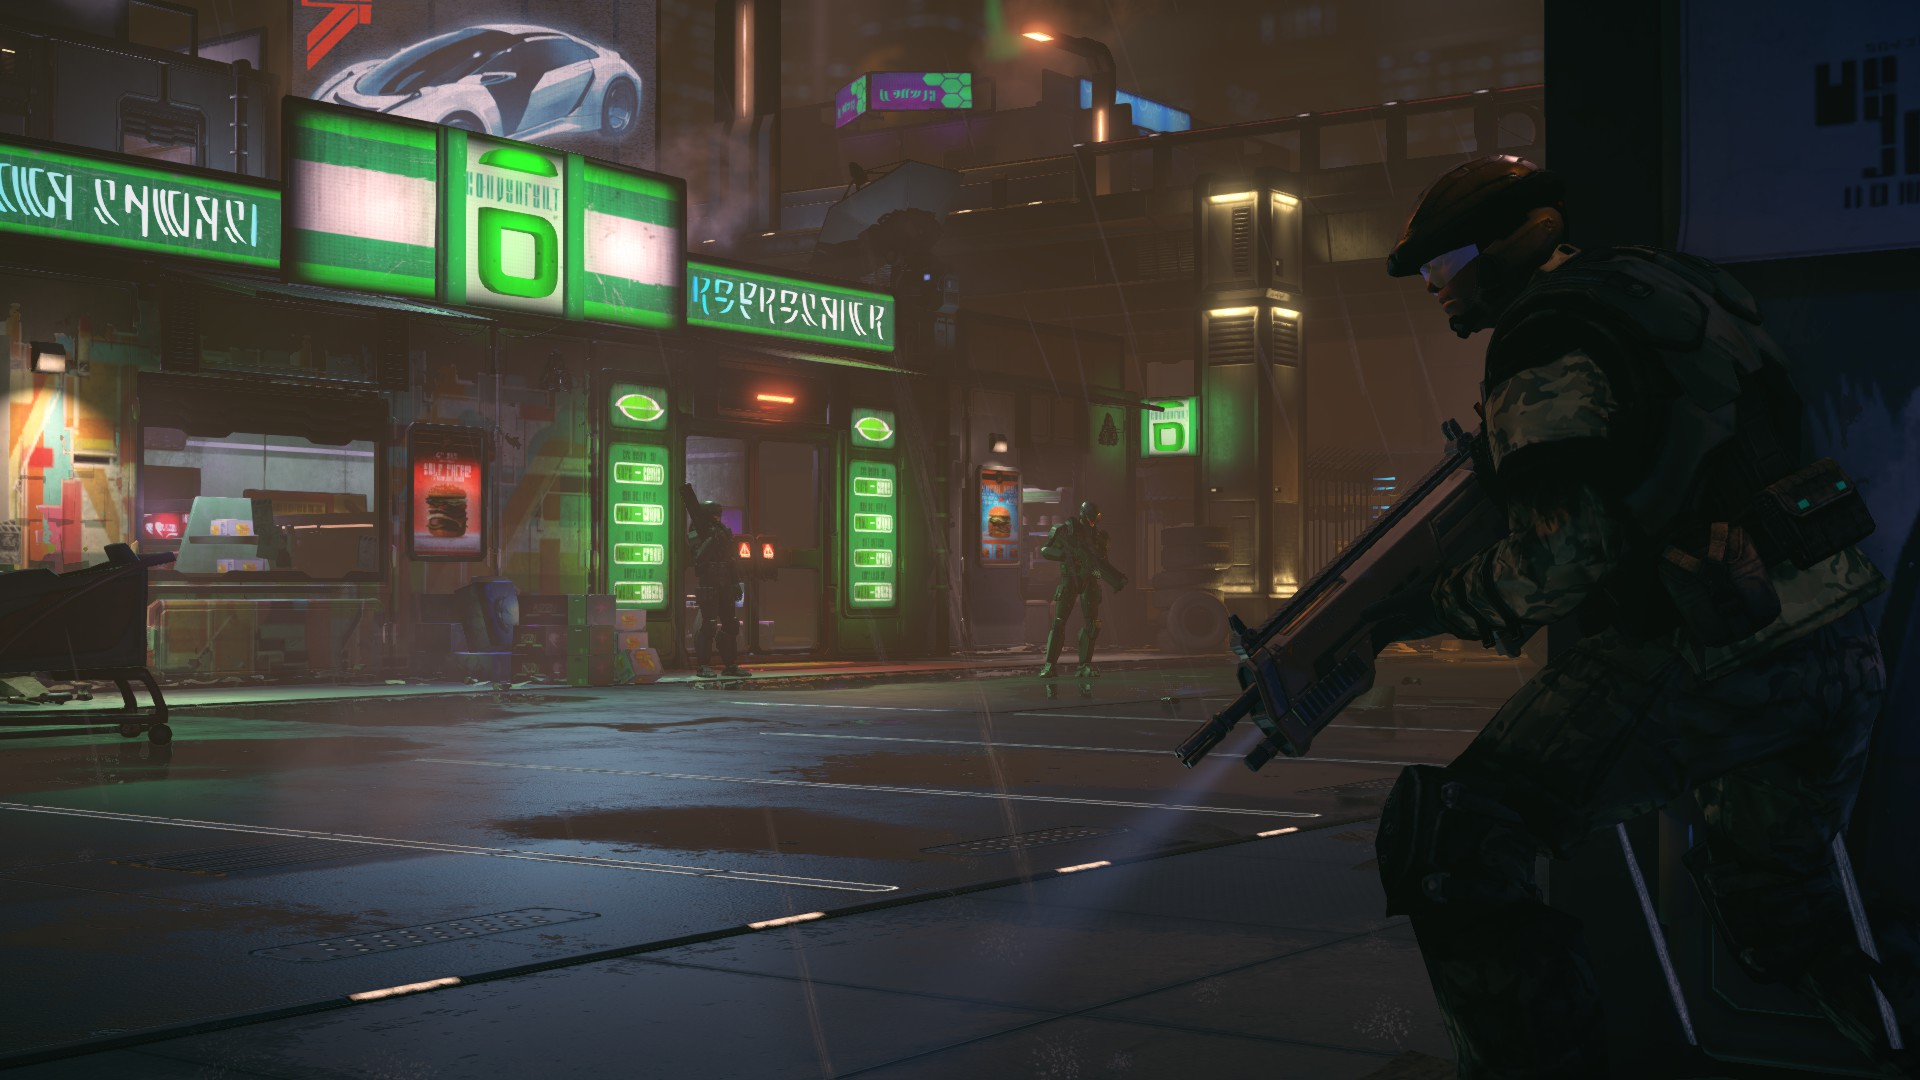 29th XCOM 2 Campaign - 29th Infantry Division